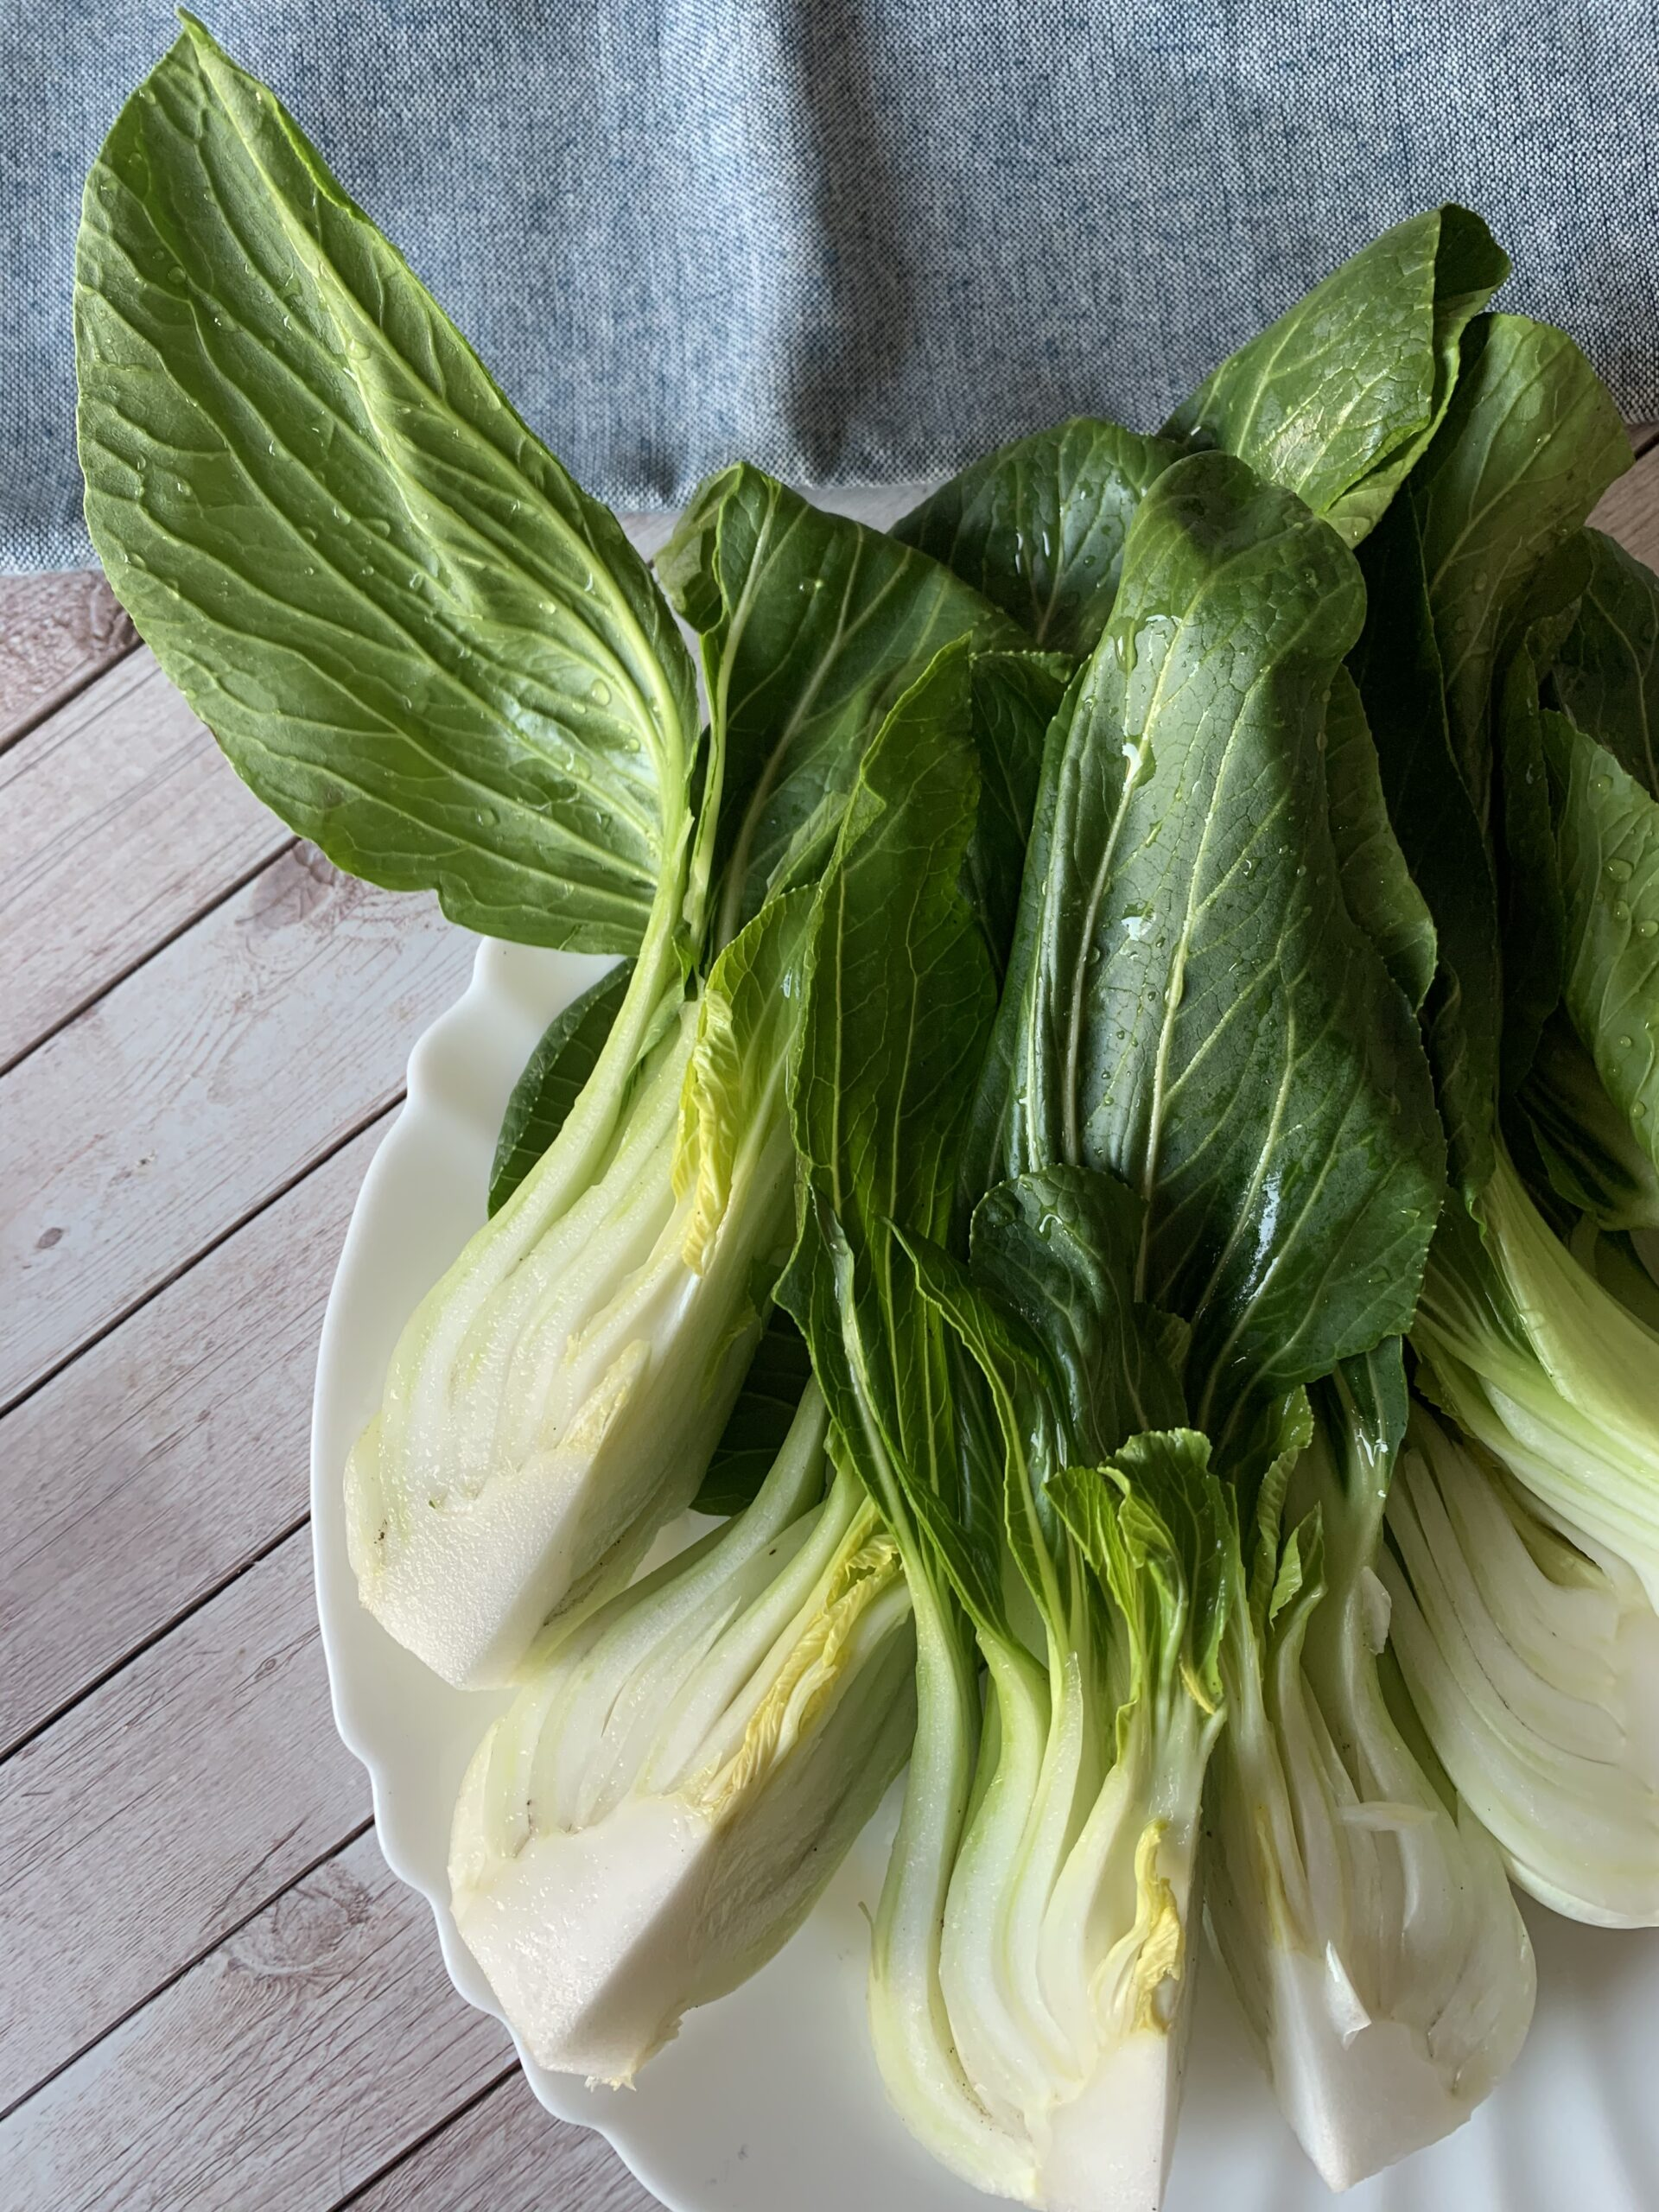 Pak choi or bok choy cut on a plate